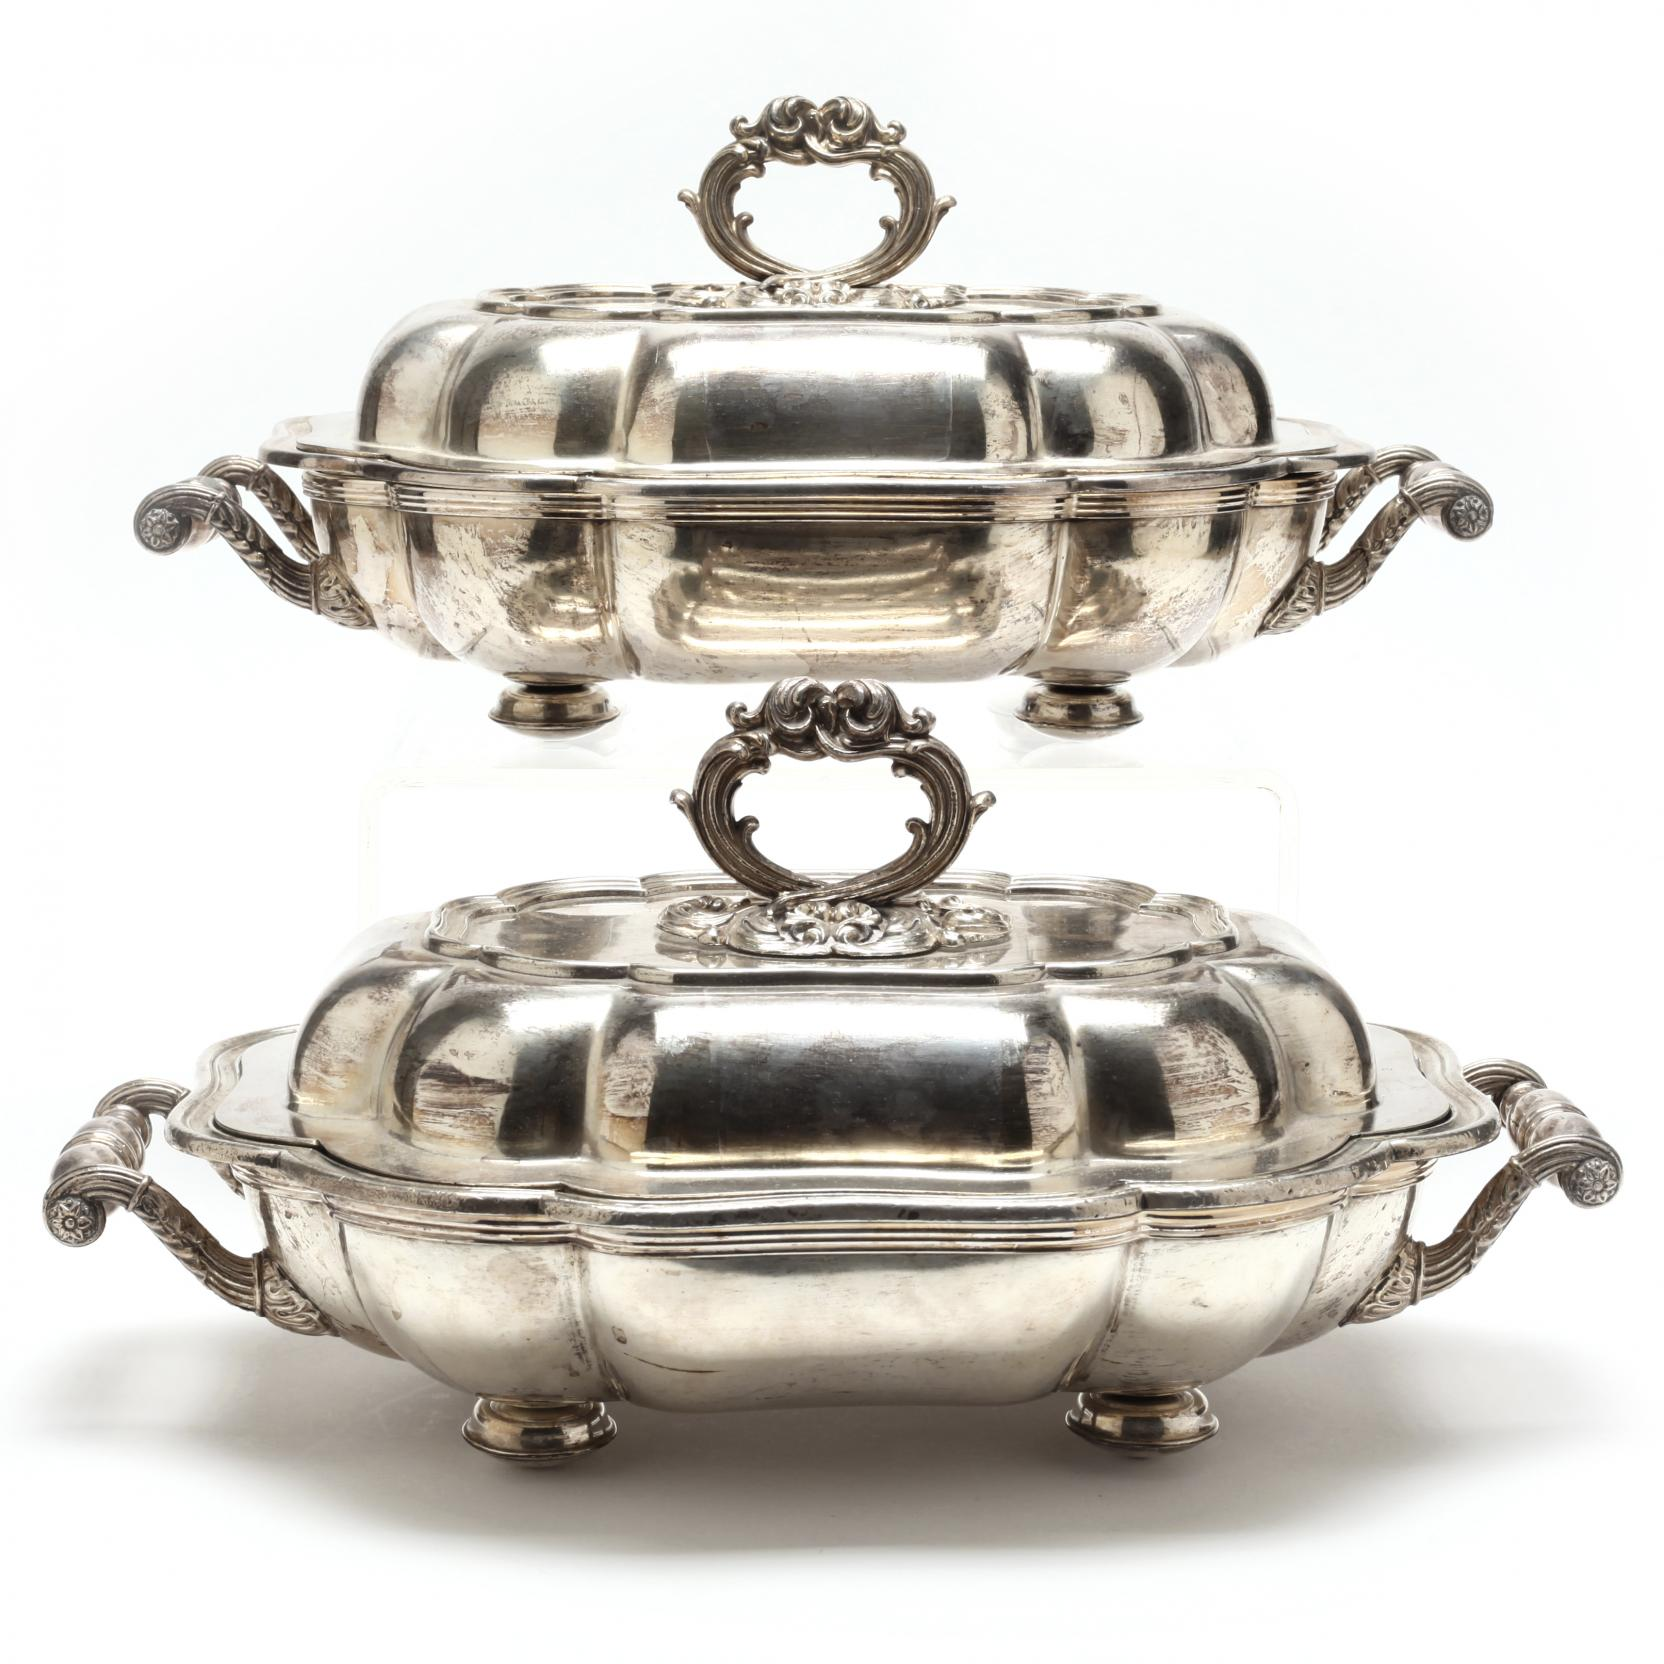 a-pair-of-19th-century-english-silverplate-entree-dishes-with-covers